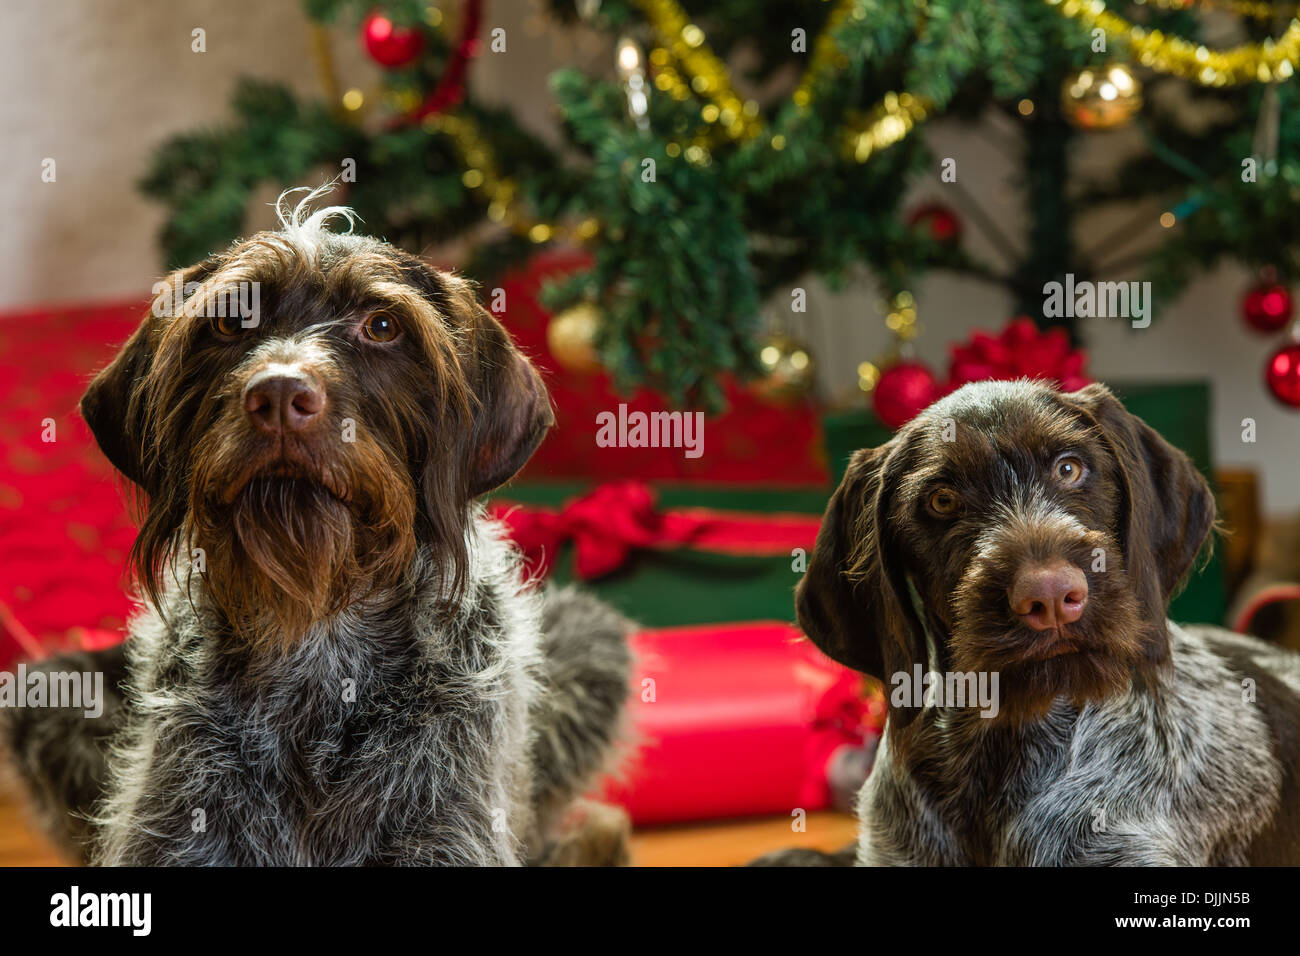 adult and puppy german wire haired pointers christmas tree and gifts on background horizon format